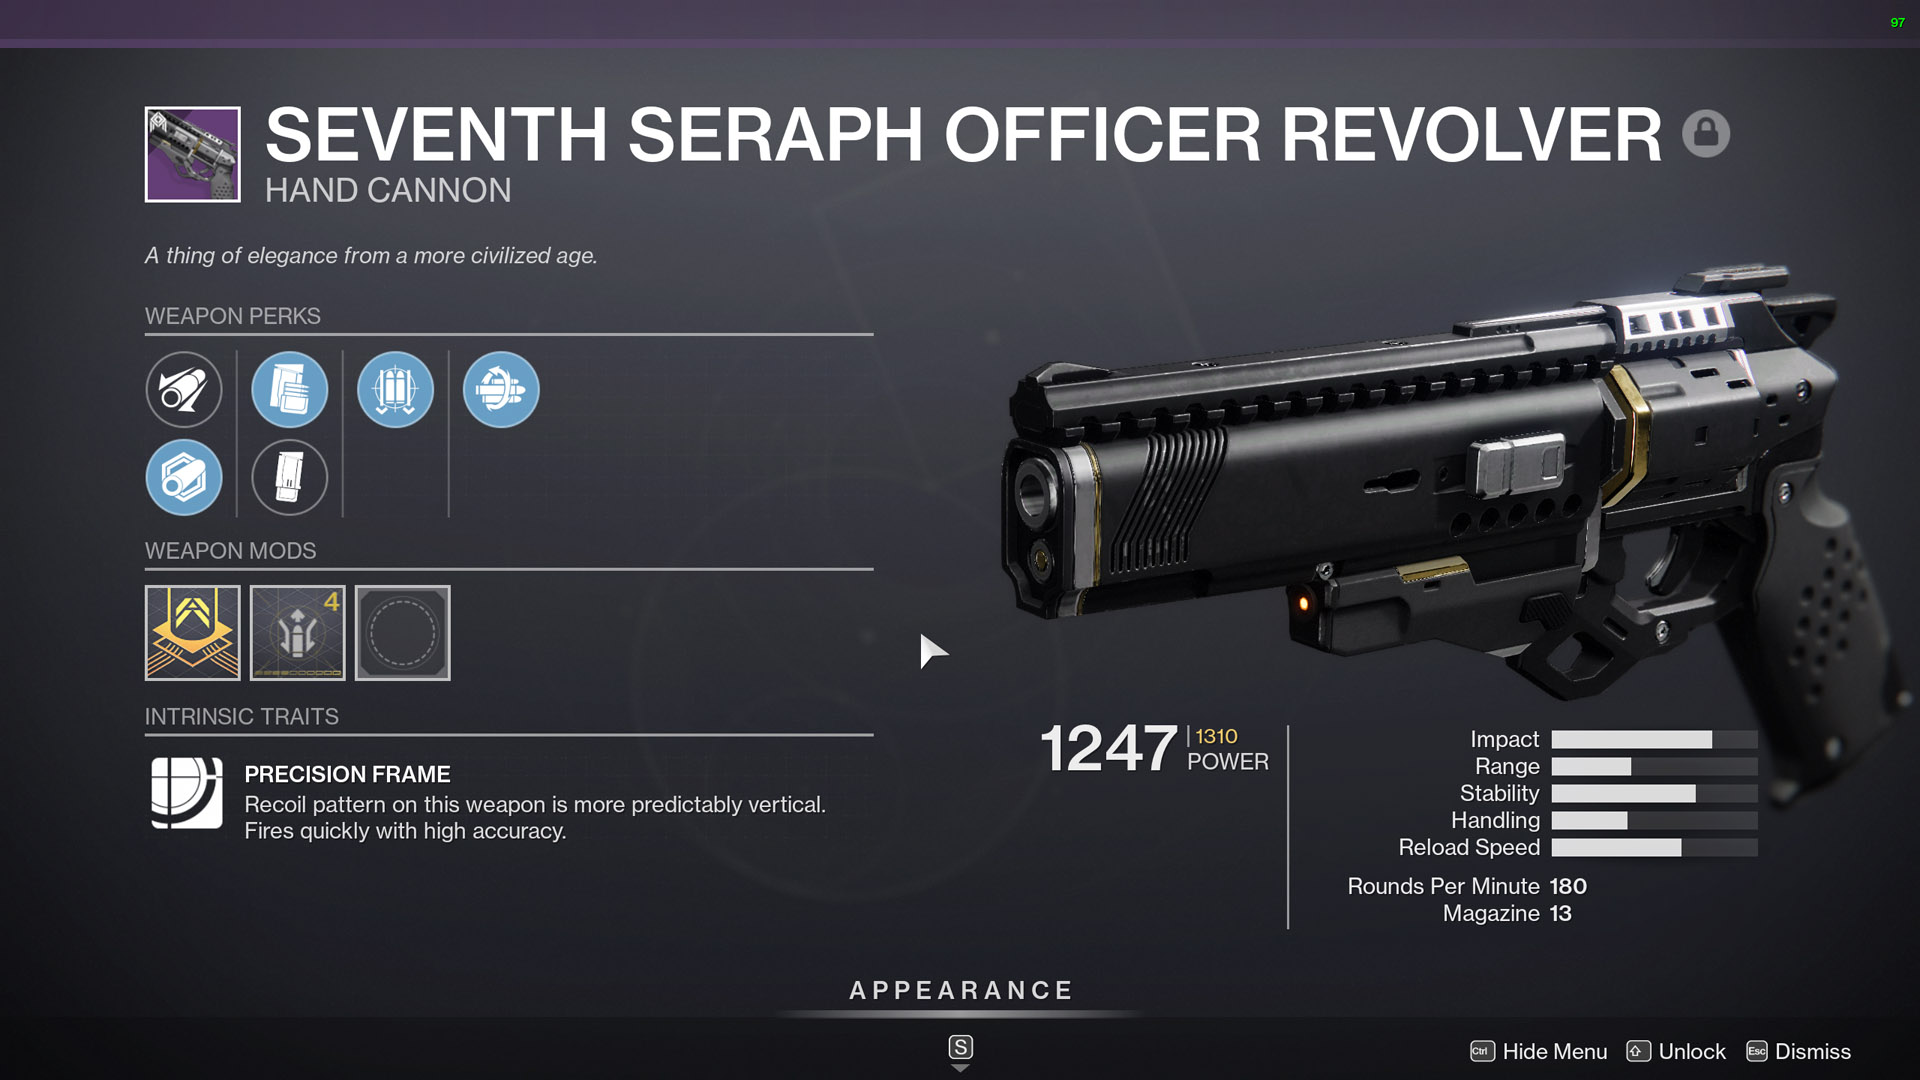 destiny 2 seventh seraph officer revolver hand cannon